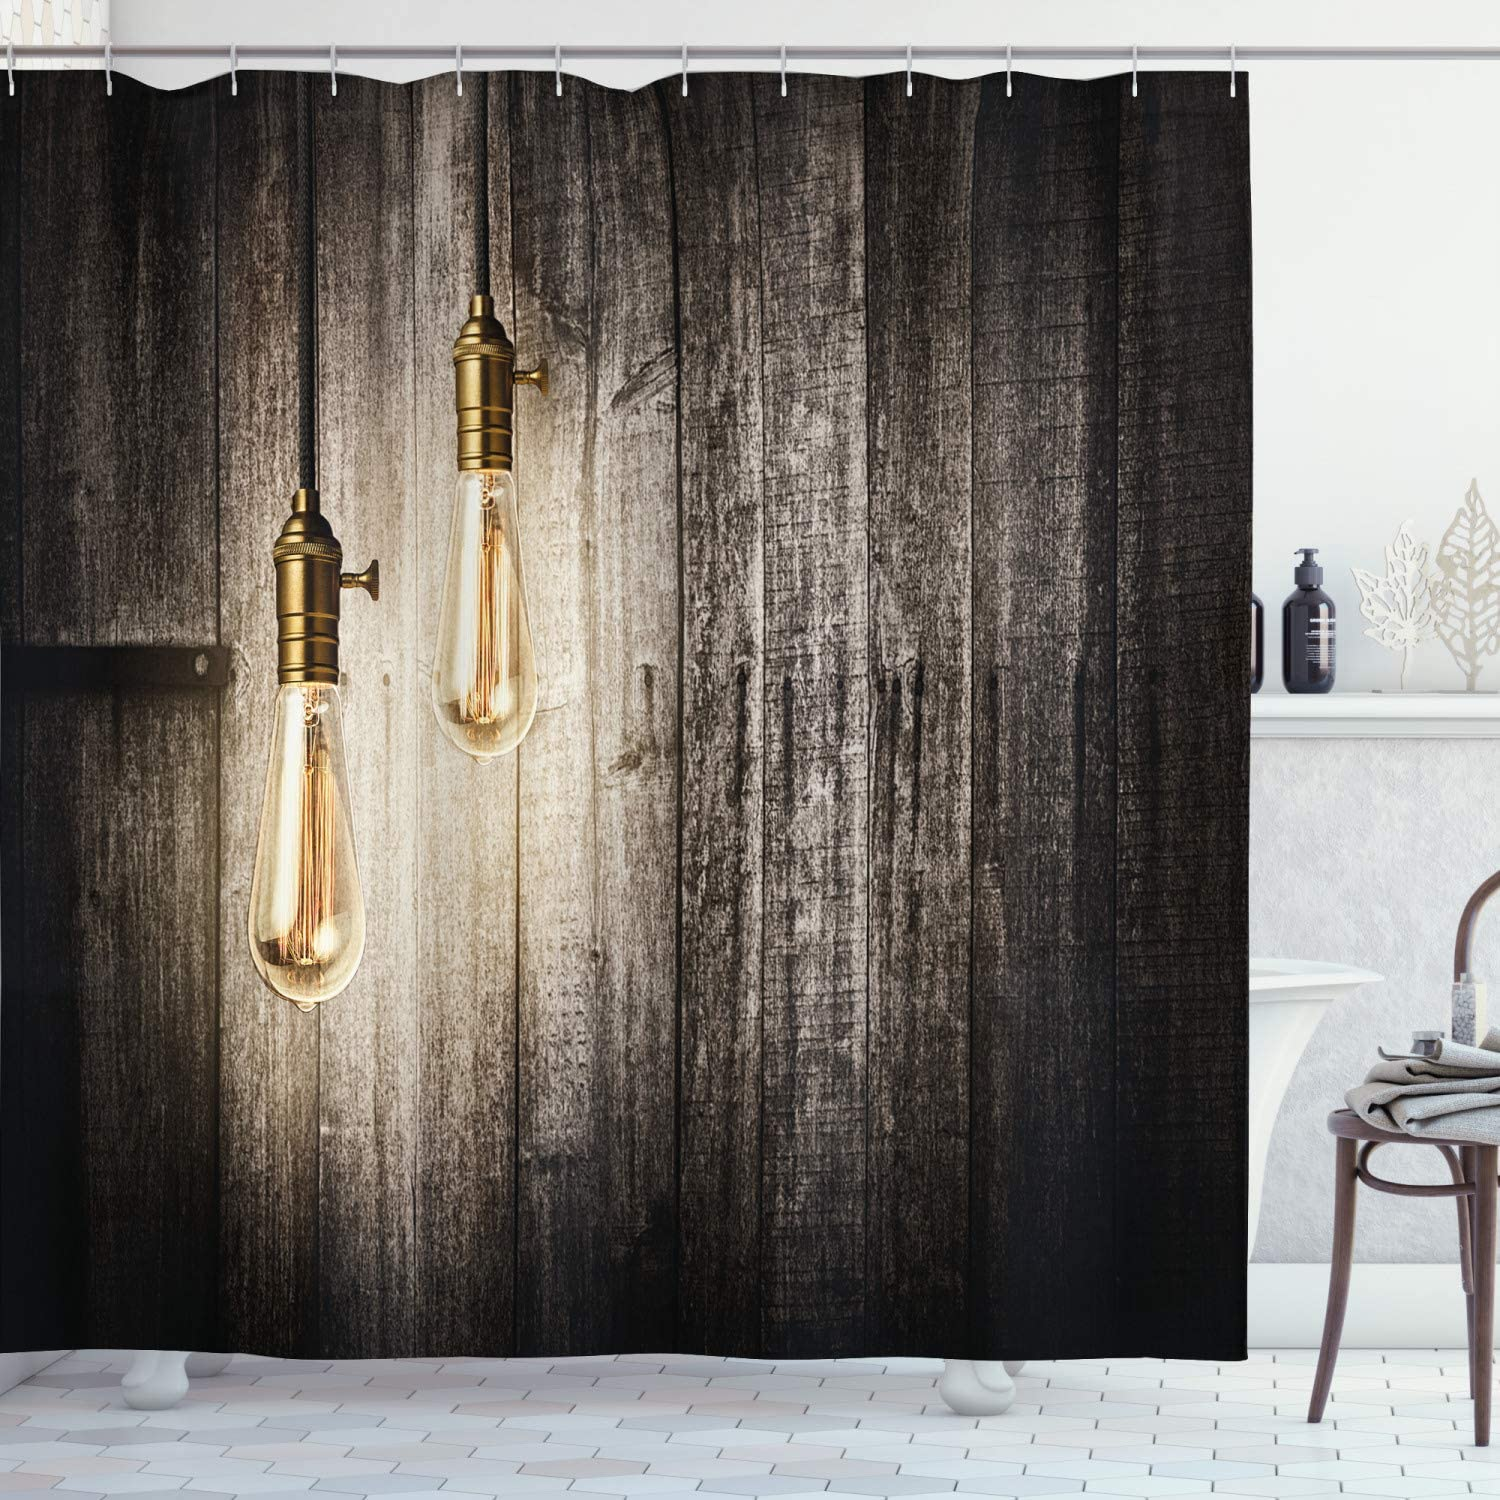 Ambesonne Industrial Shower Curtain, Historical Innovation Edison Revival Retro Electricity Wooden Planks, Cloth Fabric Bathroom Decor Set with Hooks, 70